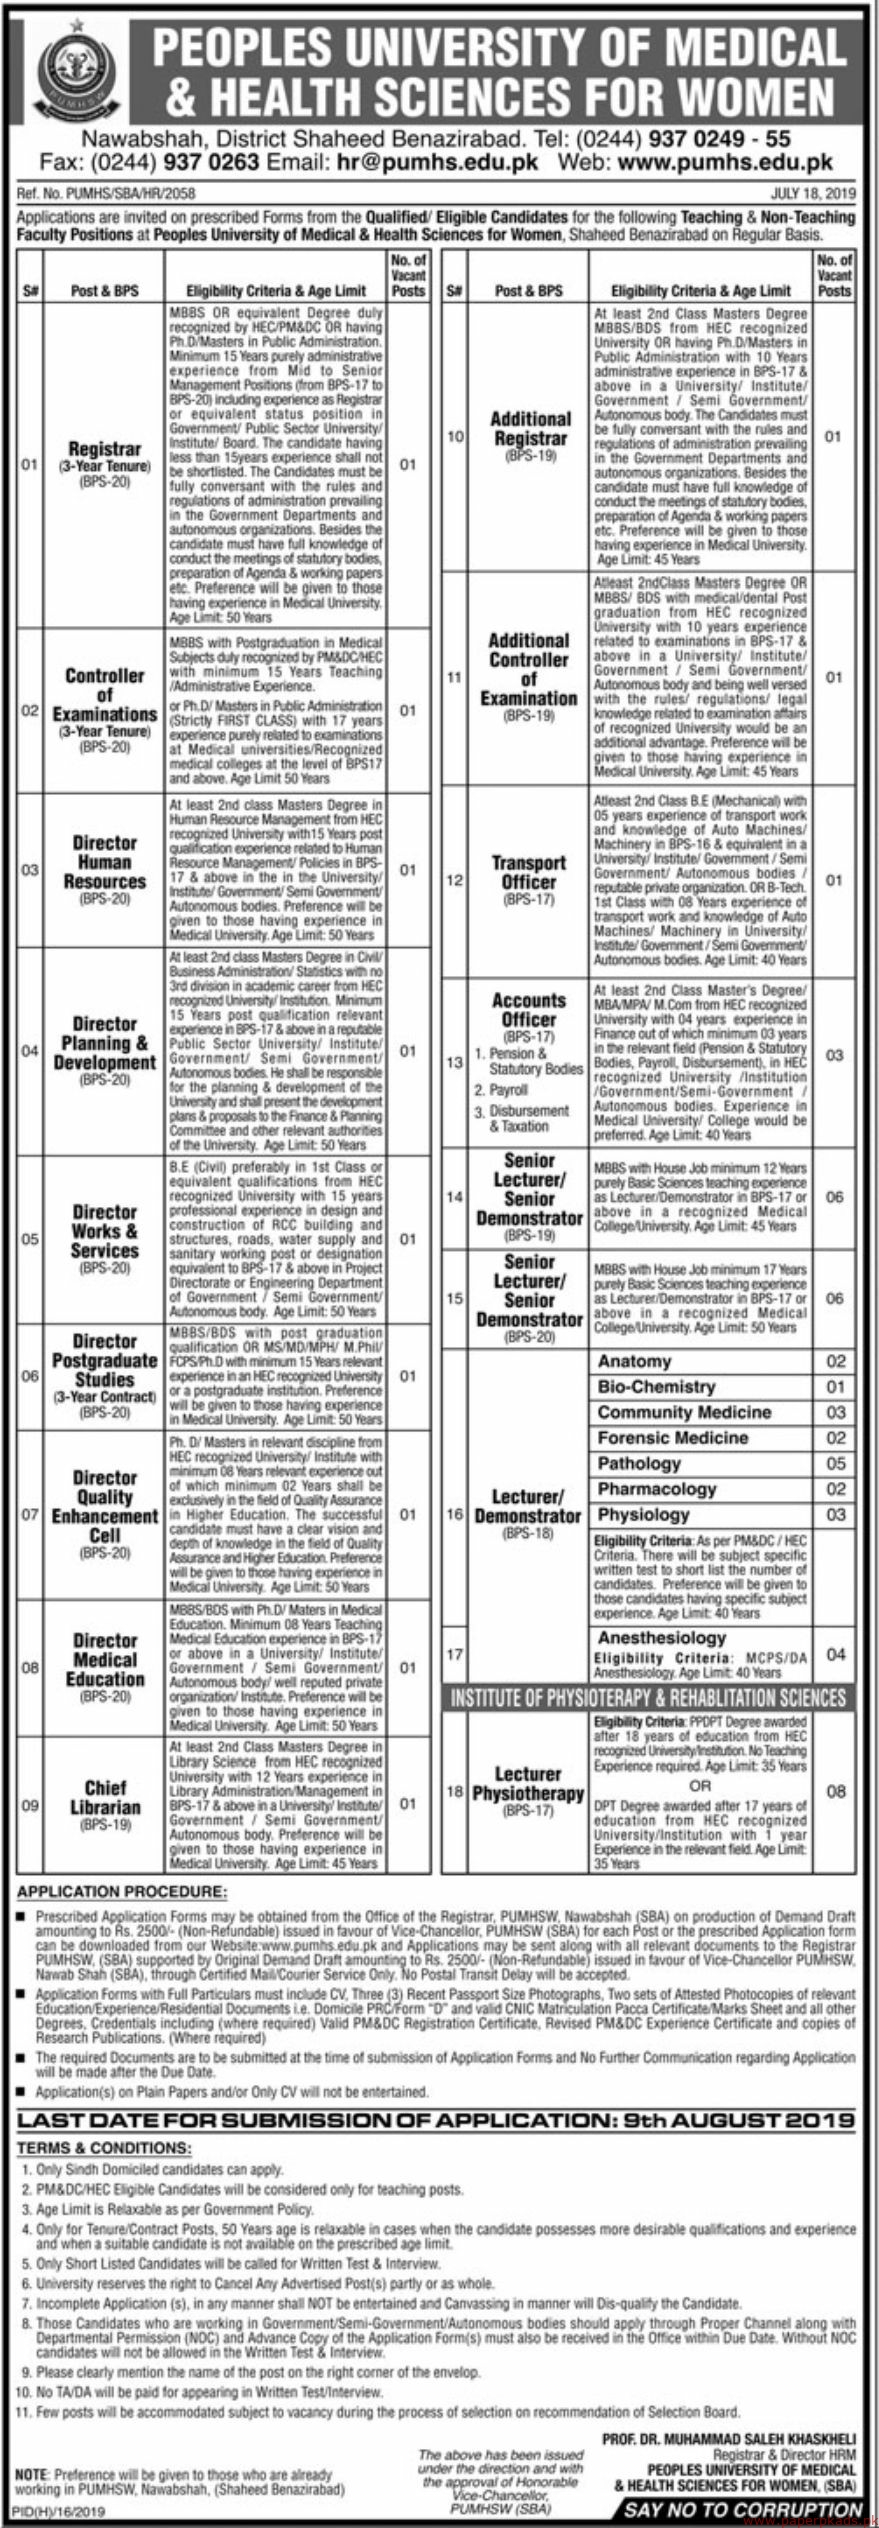 Peoples University of Medical & Health Sciences for Women Jobs 2019 Latest